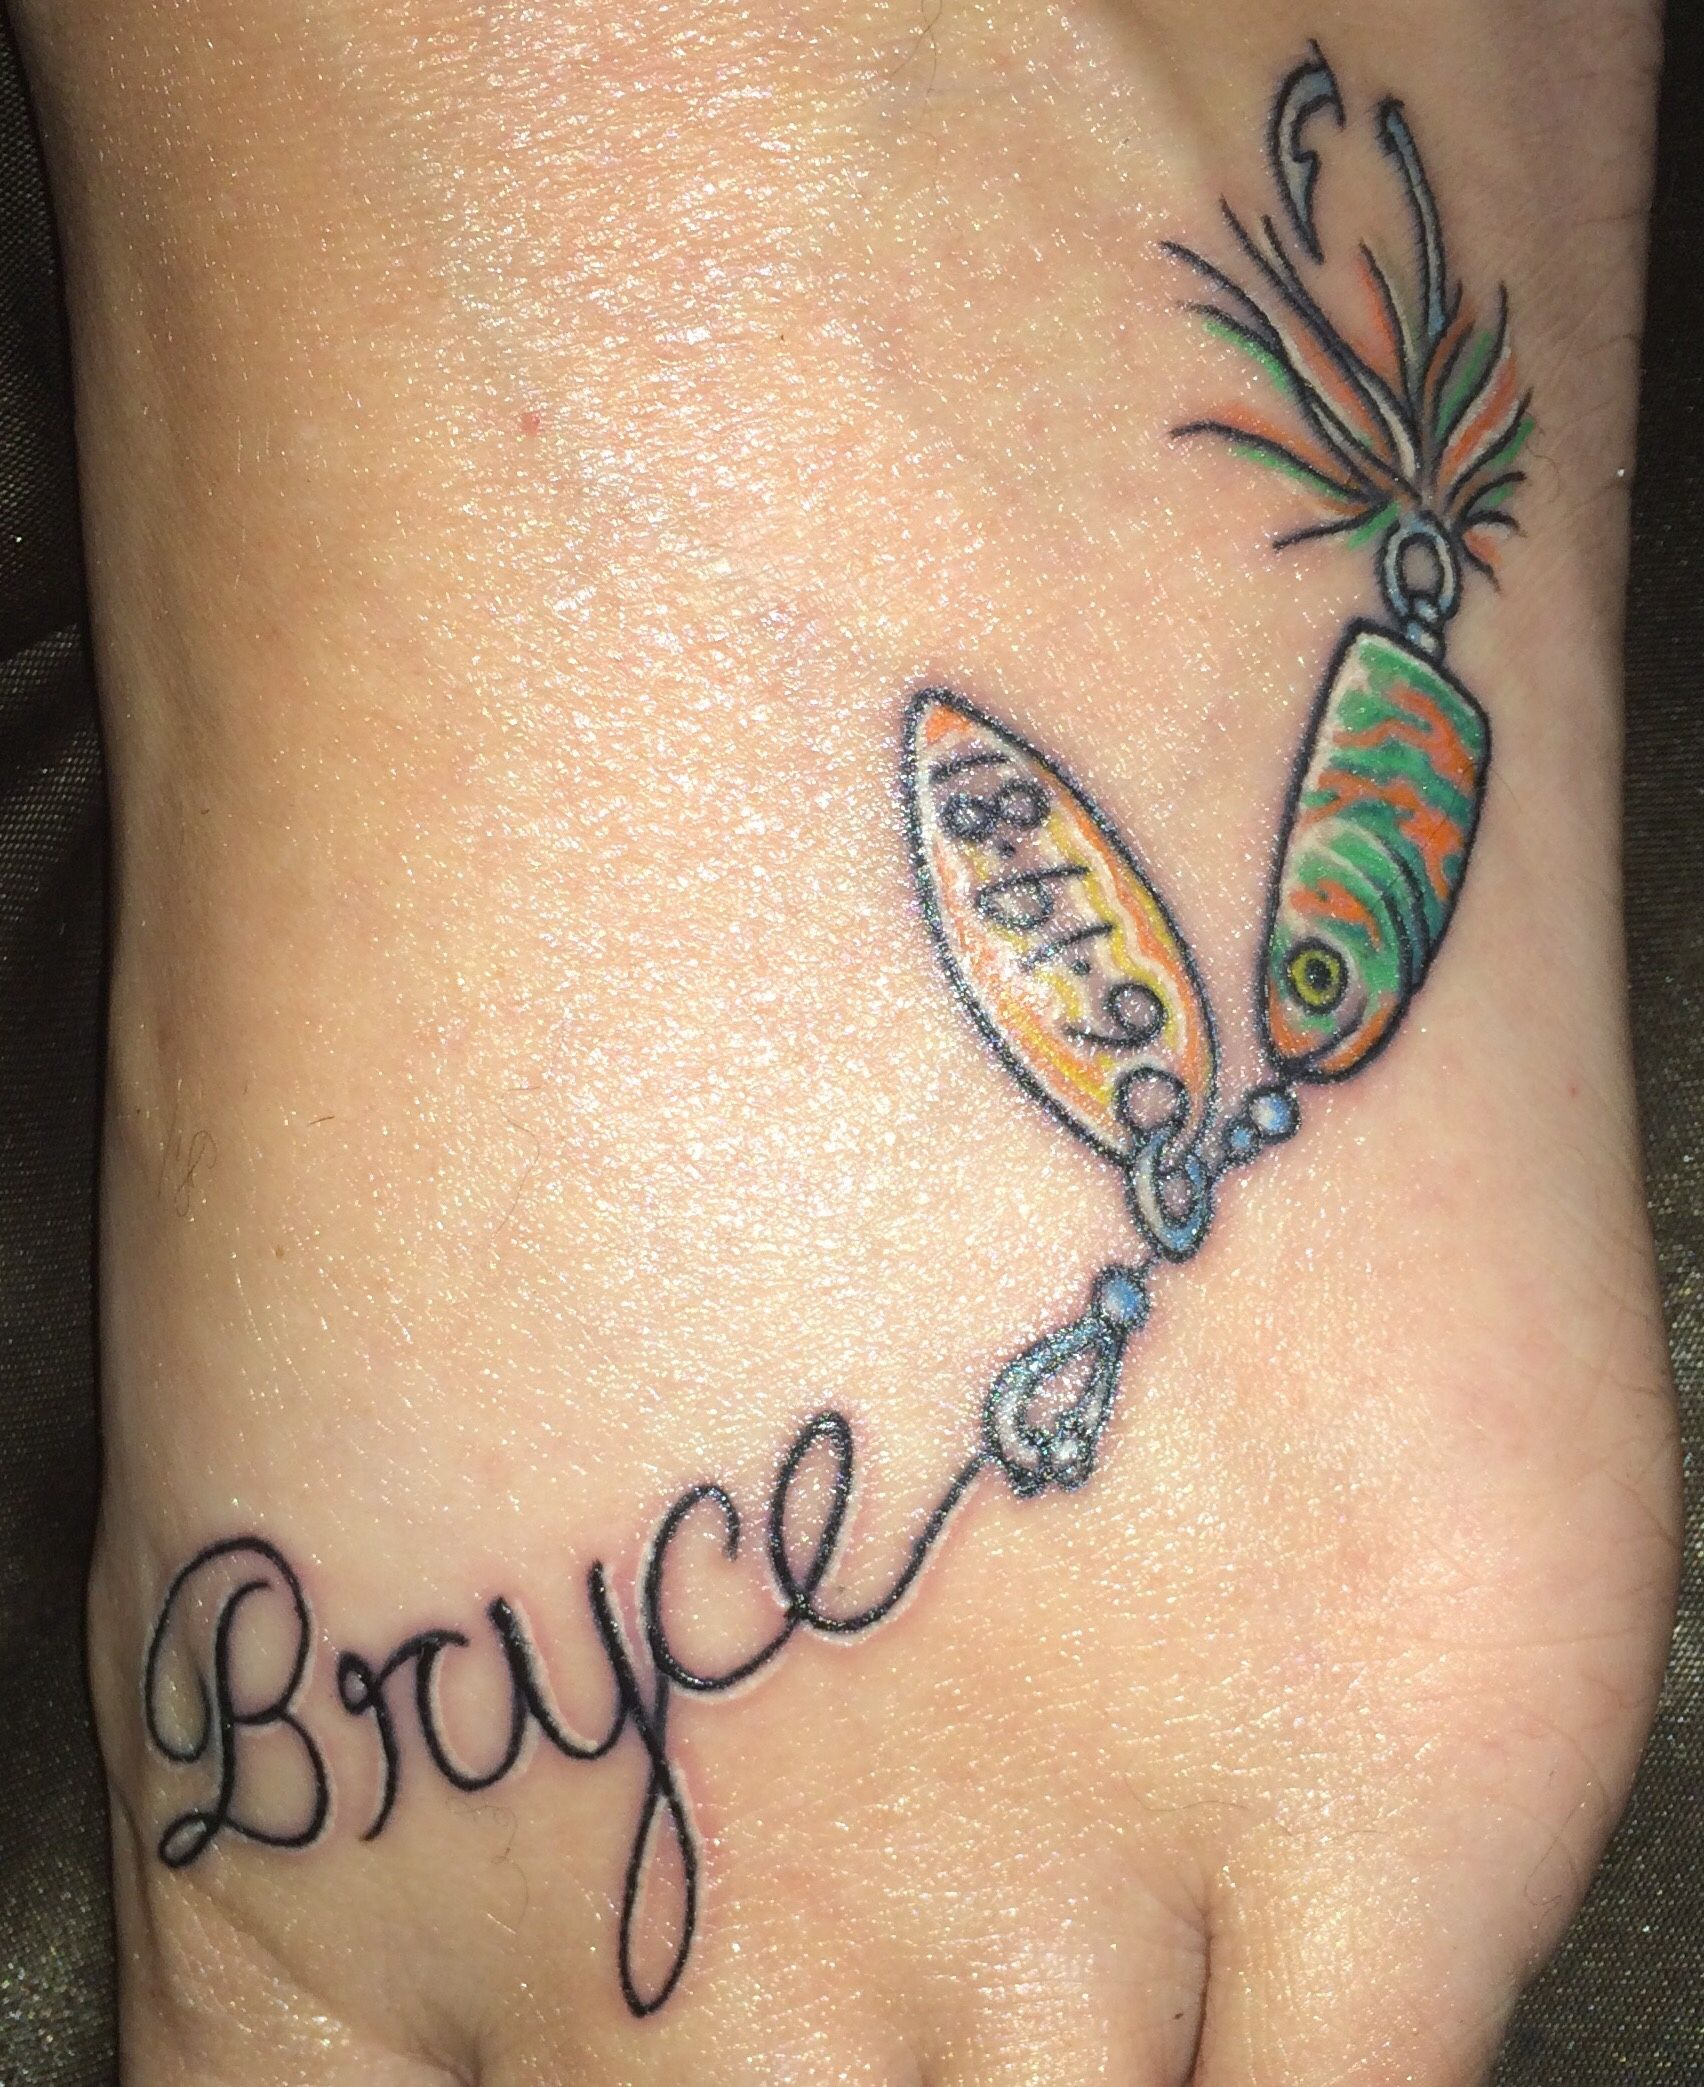 4e9480618f7b1 He loved his fishing! I'm in love with my tattoo! It's perfect. He would've  loved it and it turned out beautiful! #tattoo #lure #Fishing #fishingtattoo  ...